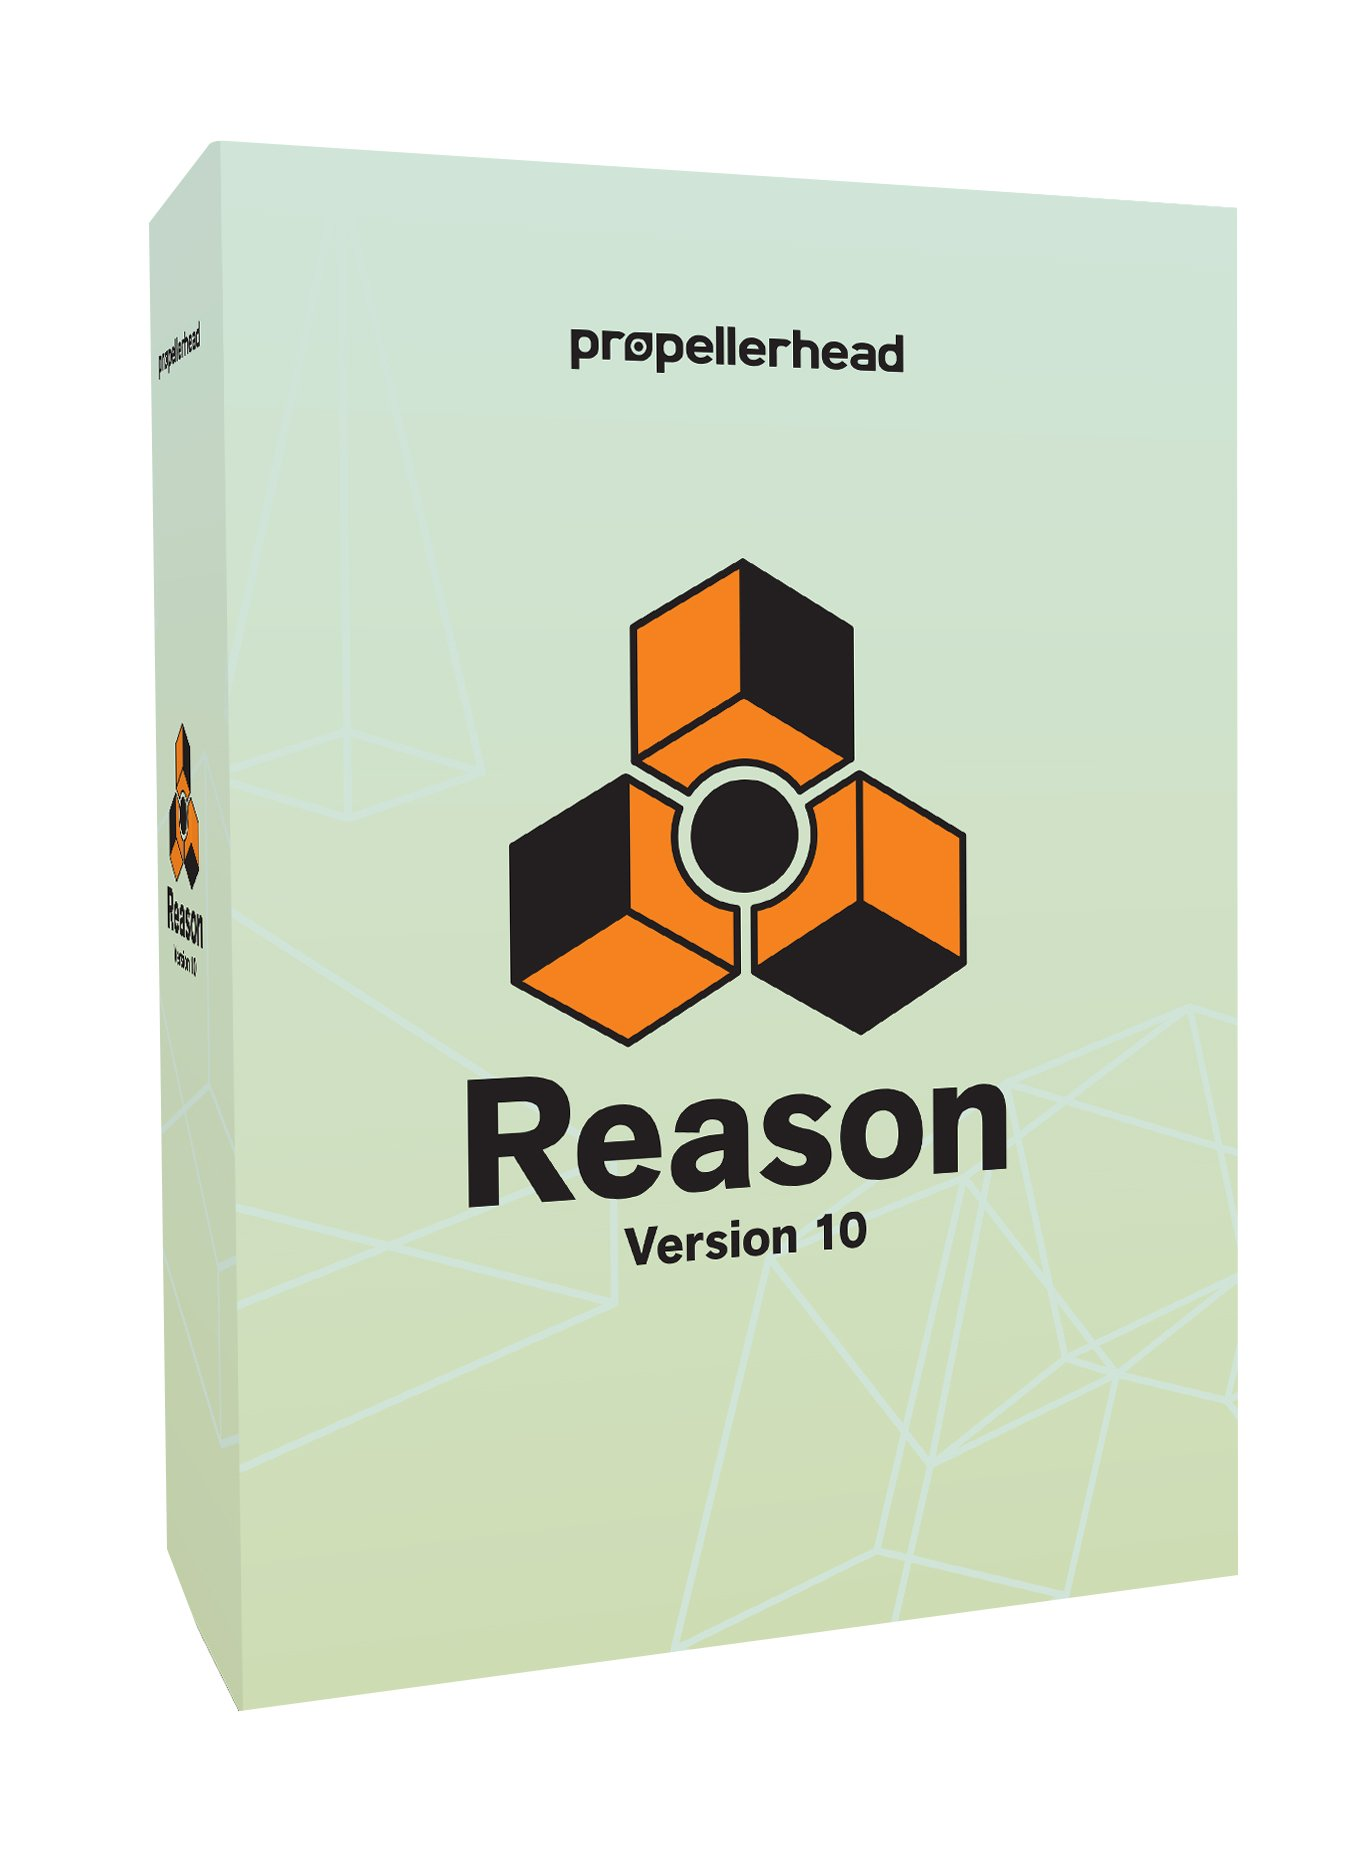 Propellerhead Upgrade to Reason 10 for Essentials/Ltd/Adapted owners (121000010) by Propellerhead